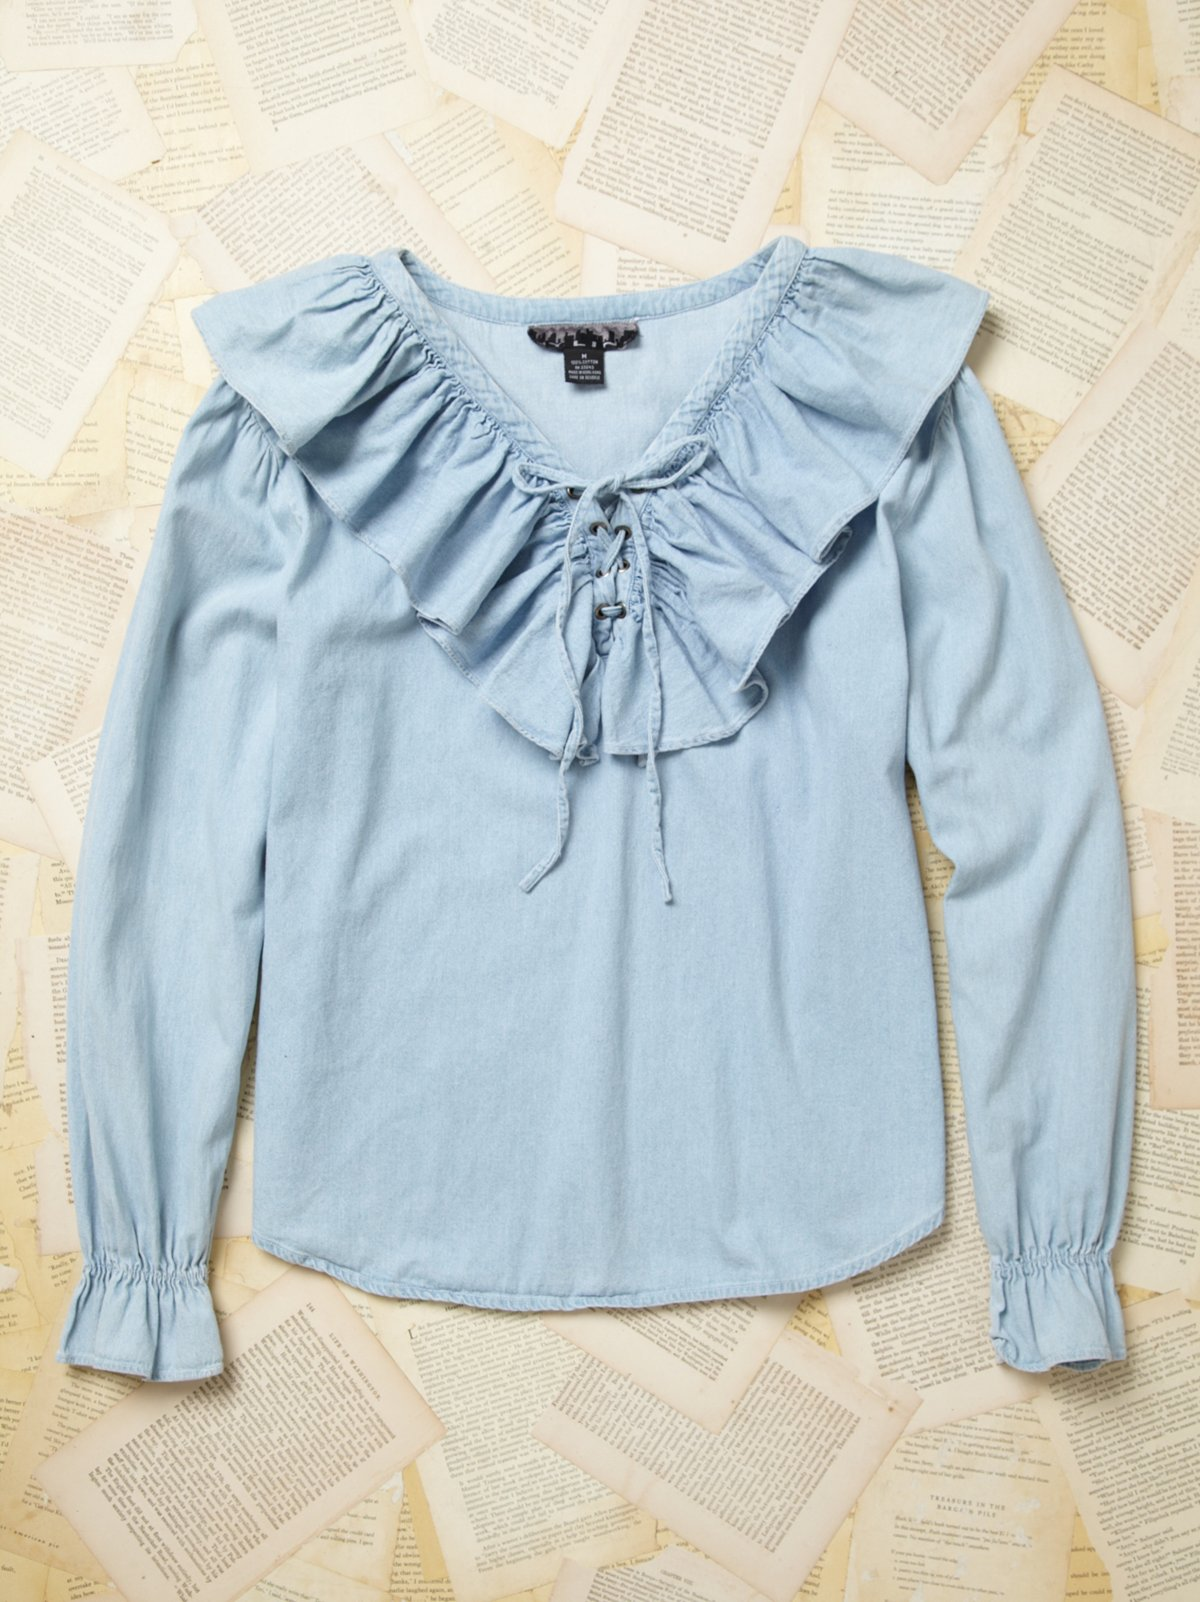 Vintage Denim Ruffle Shirt